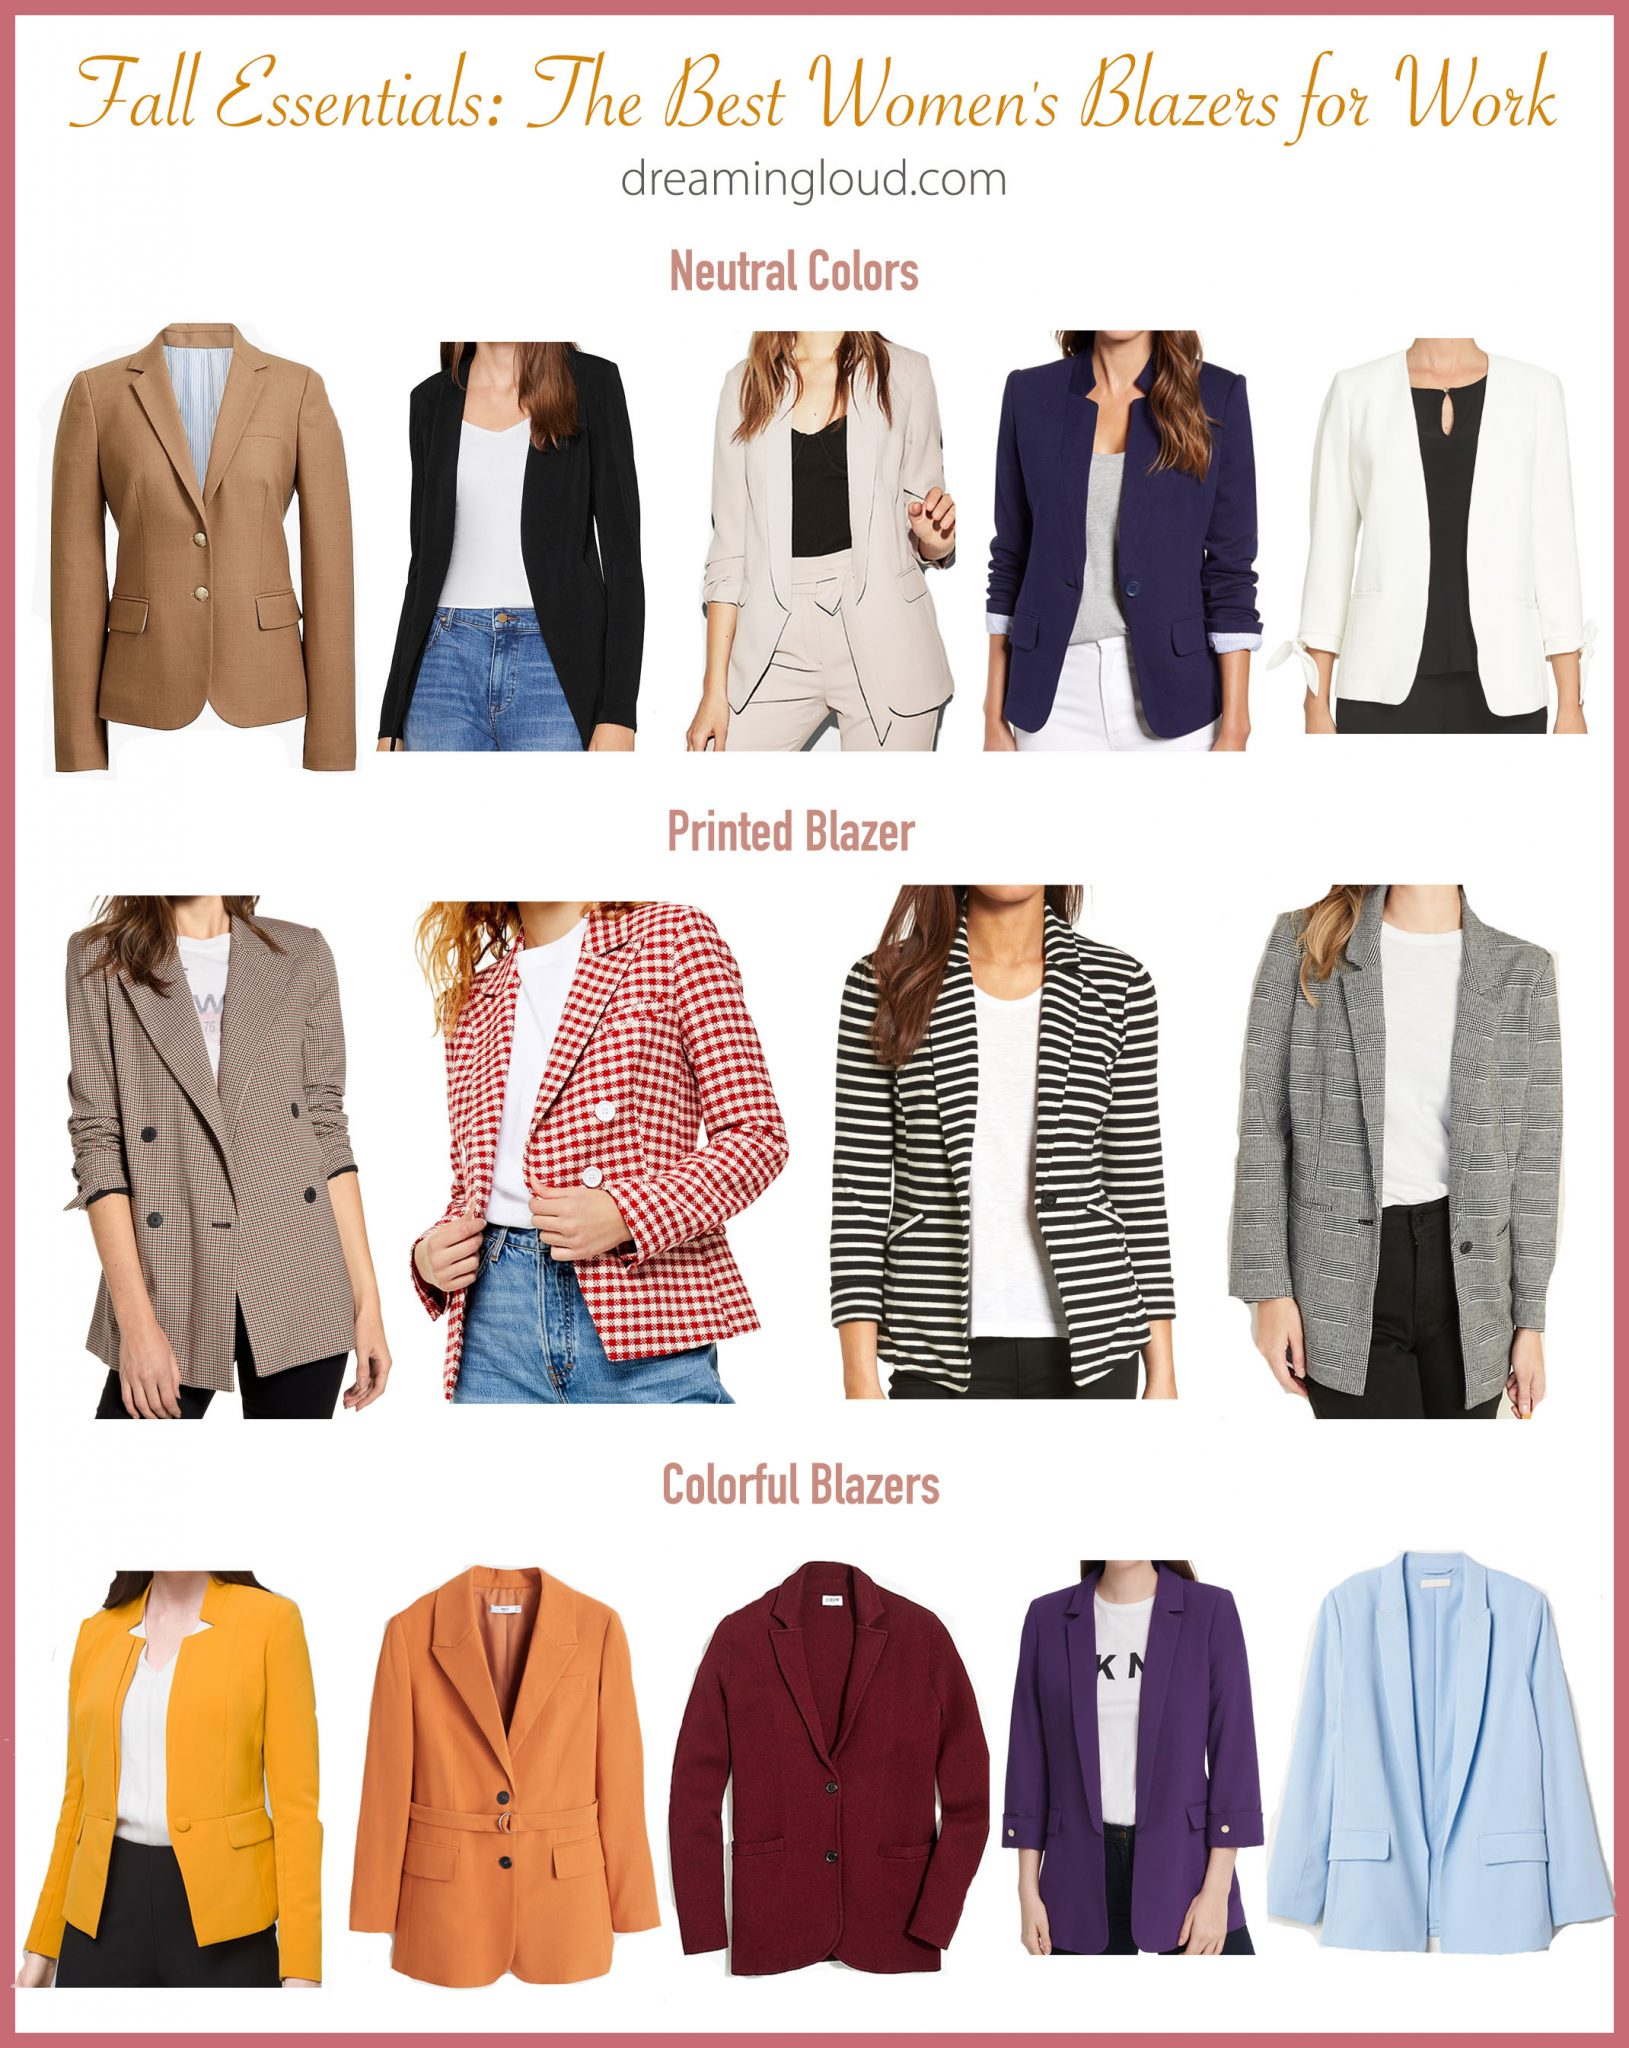 Fall Essentials- The Best Women's Blazers for Work | Fall Essentials: The Best Women's Blazers for Work featured by popular US fashion blog, Dreaming Loud: image of various women's blazers.